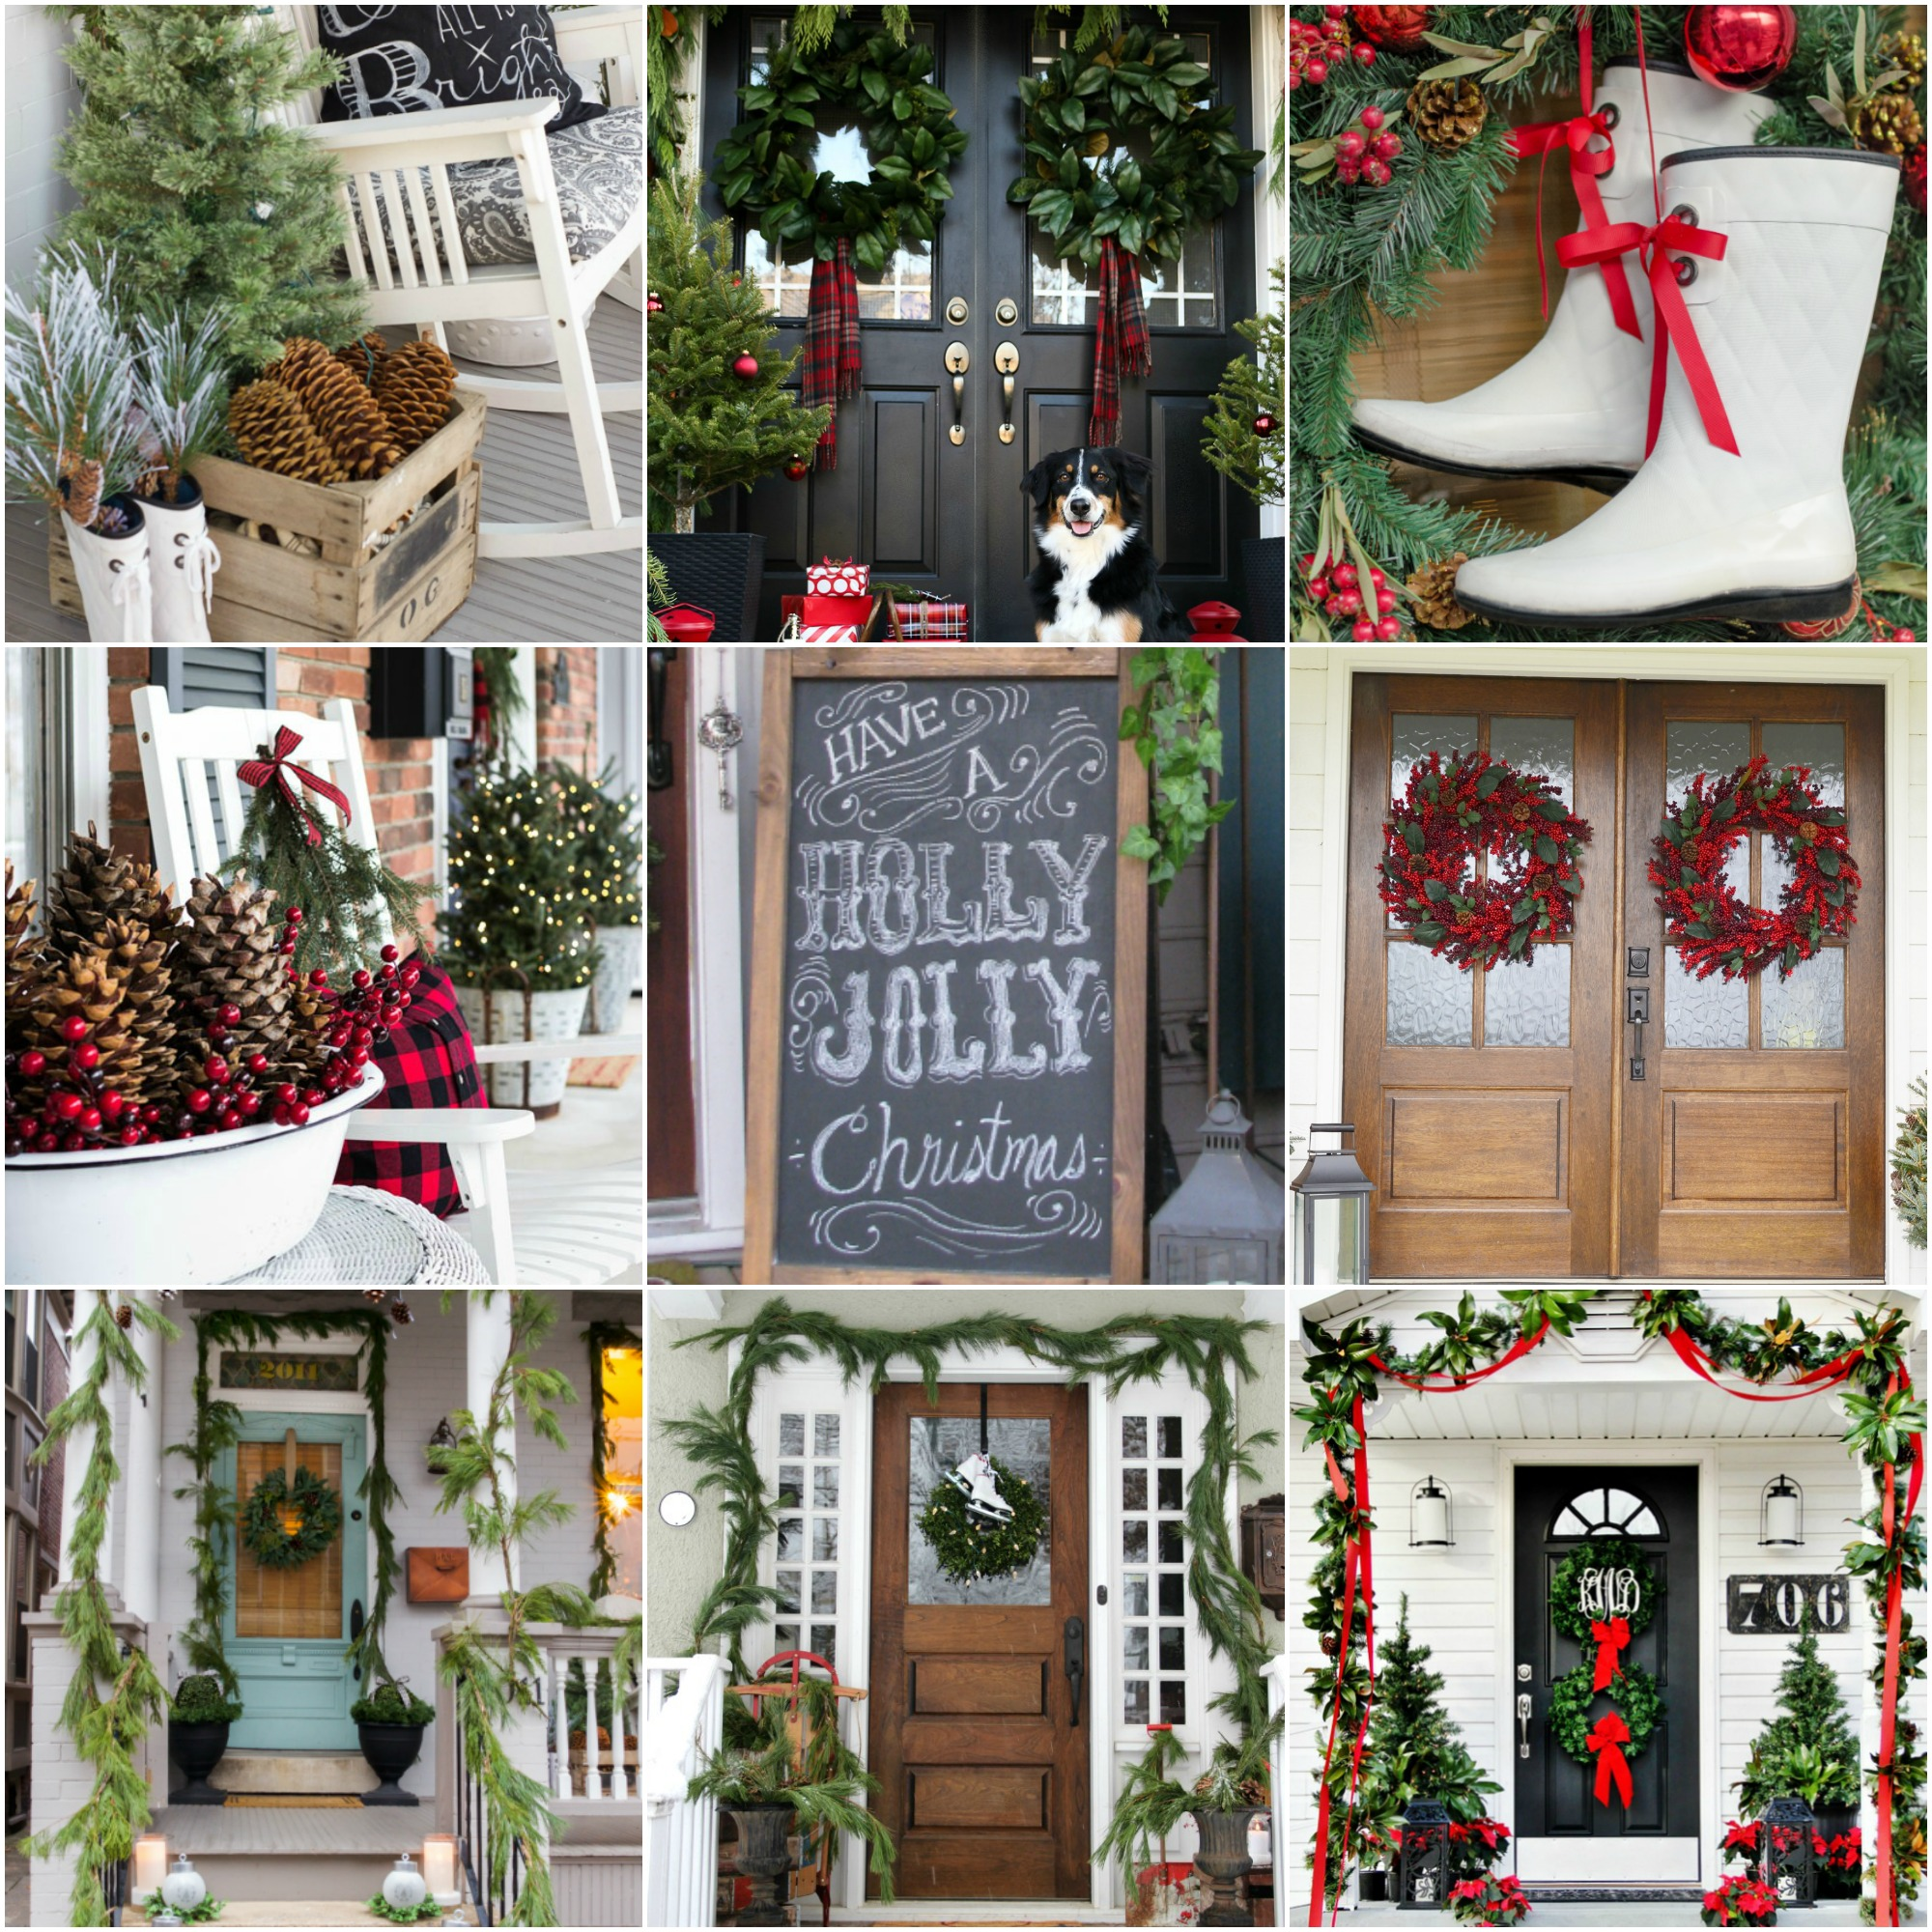 Christmas Diy Decorating Ideas: 20 Beautiful Christmas Porch Ideas {DIY Christmas Decorating}